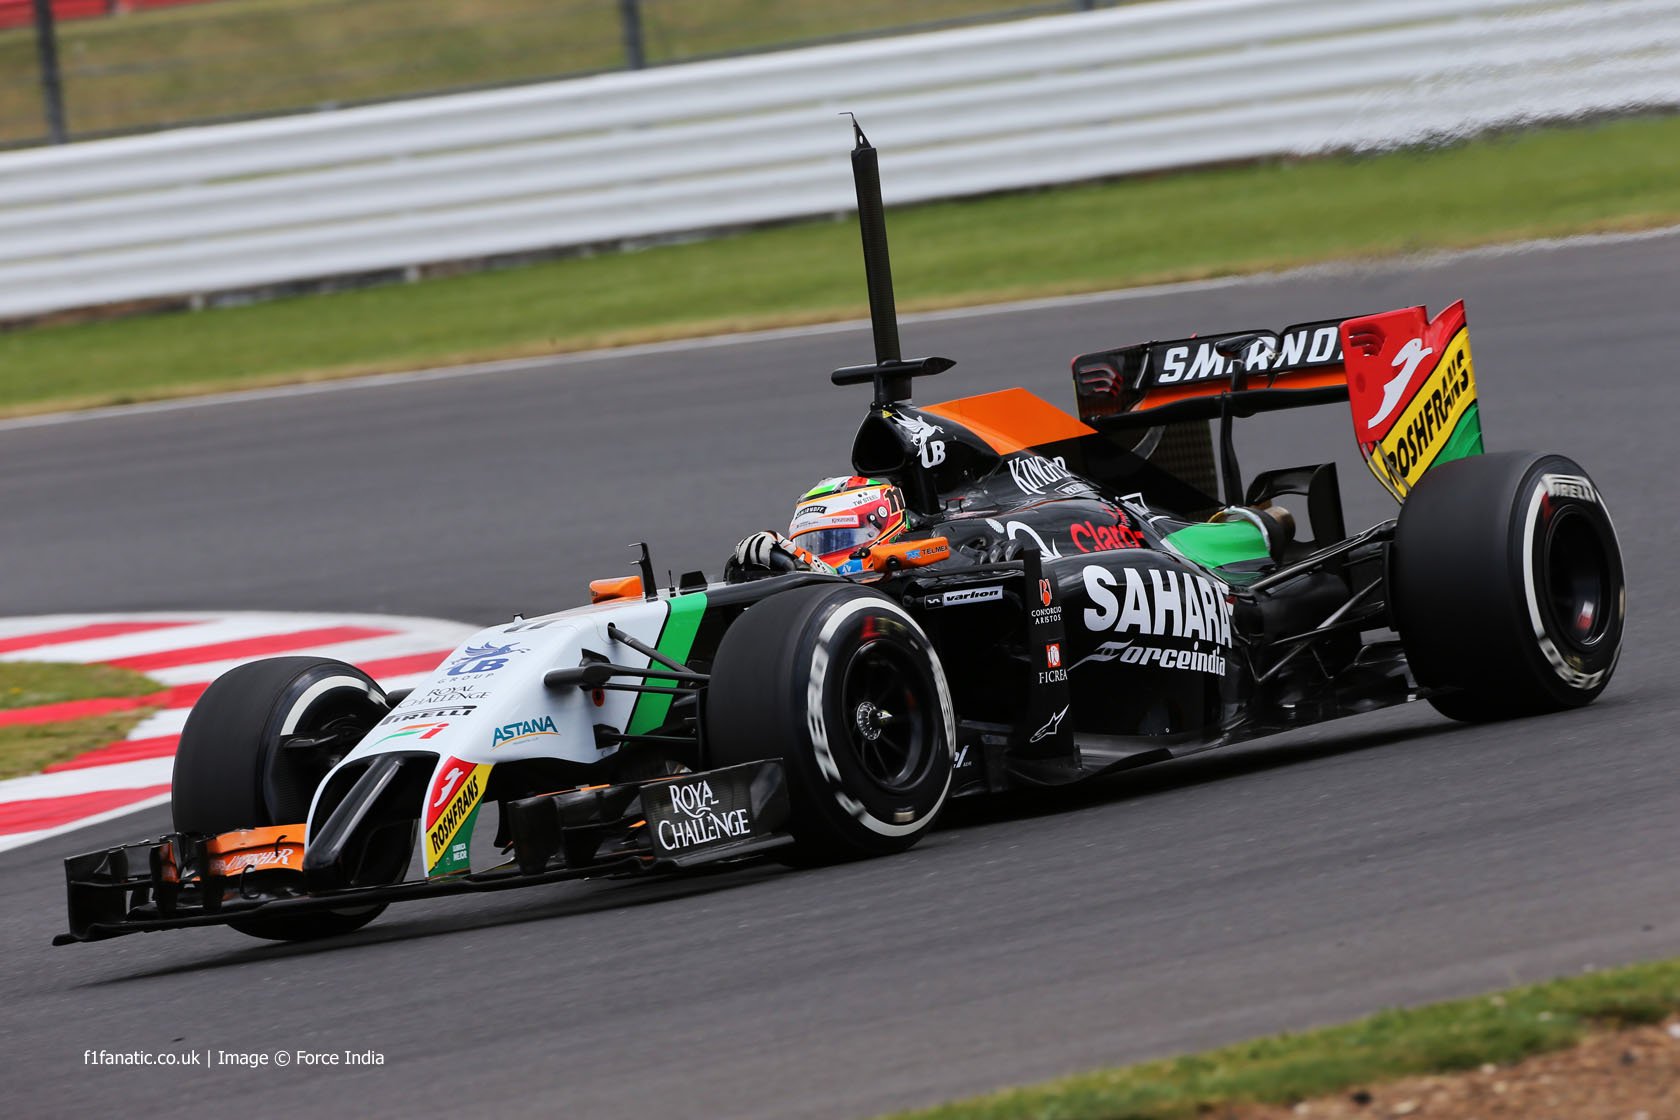 Sergio Perez, Force India, Silverstone test, 2014